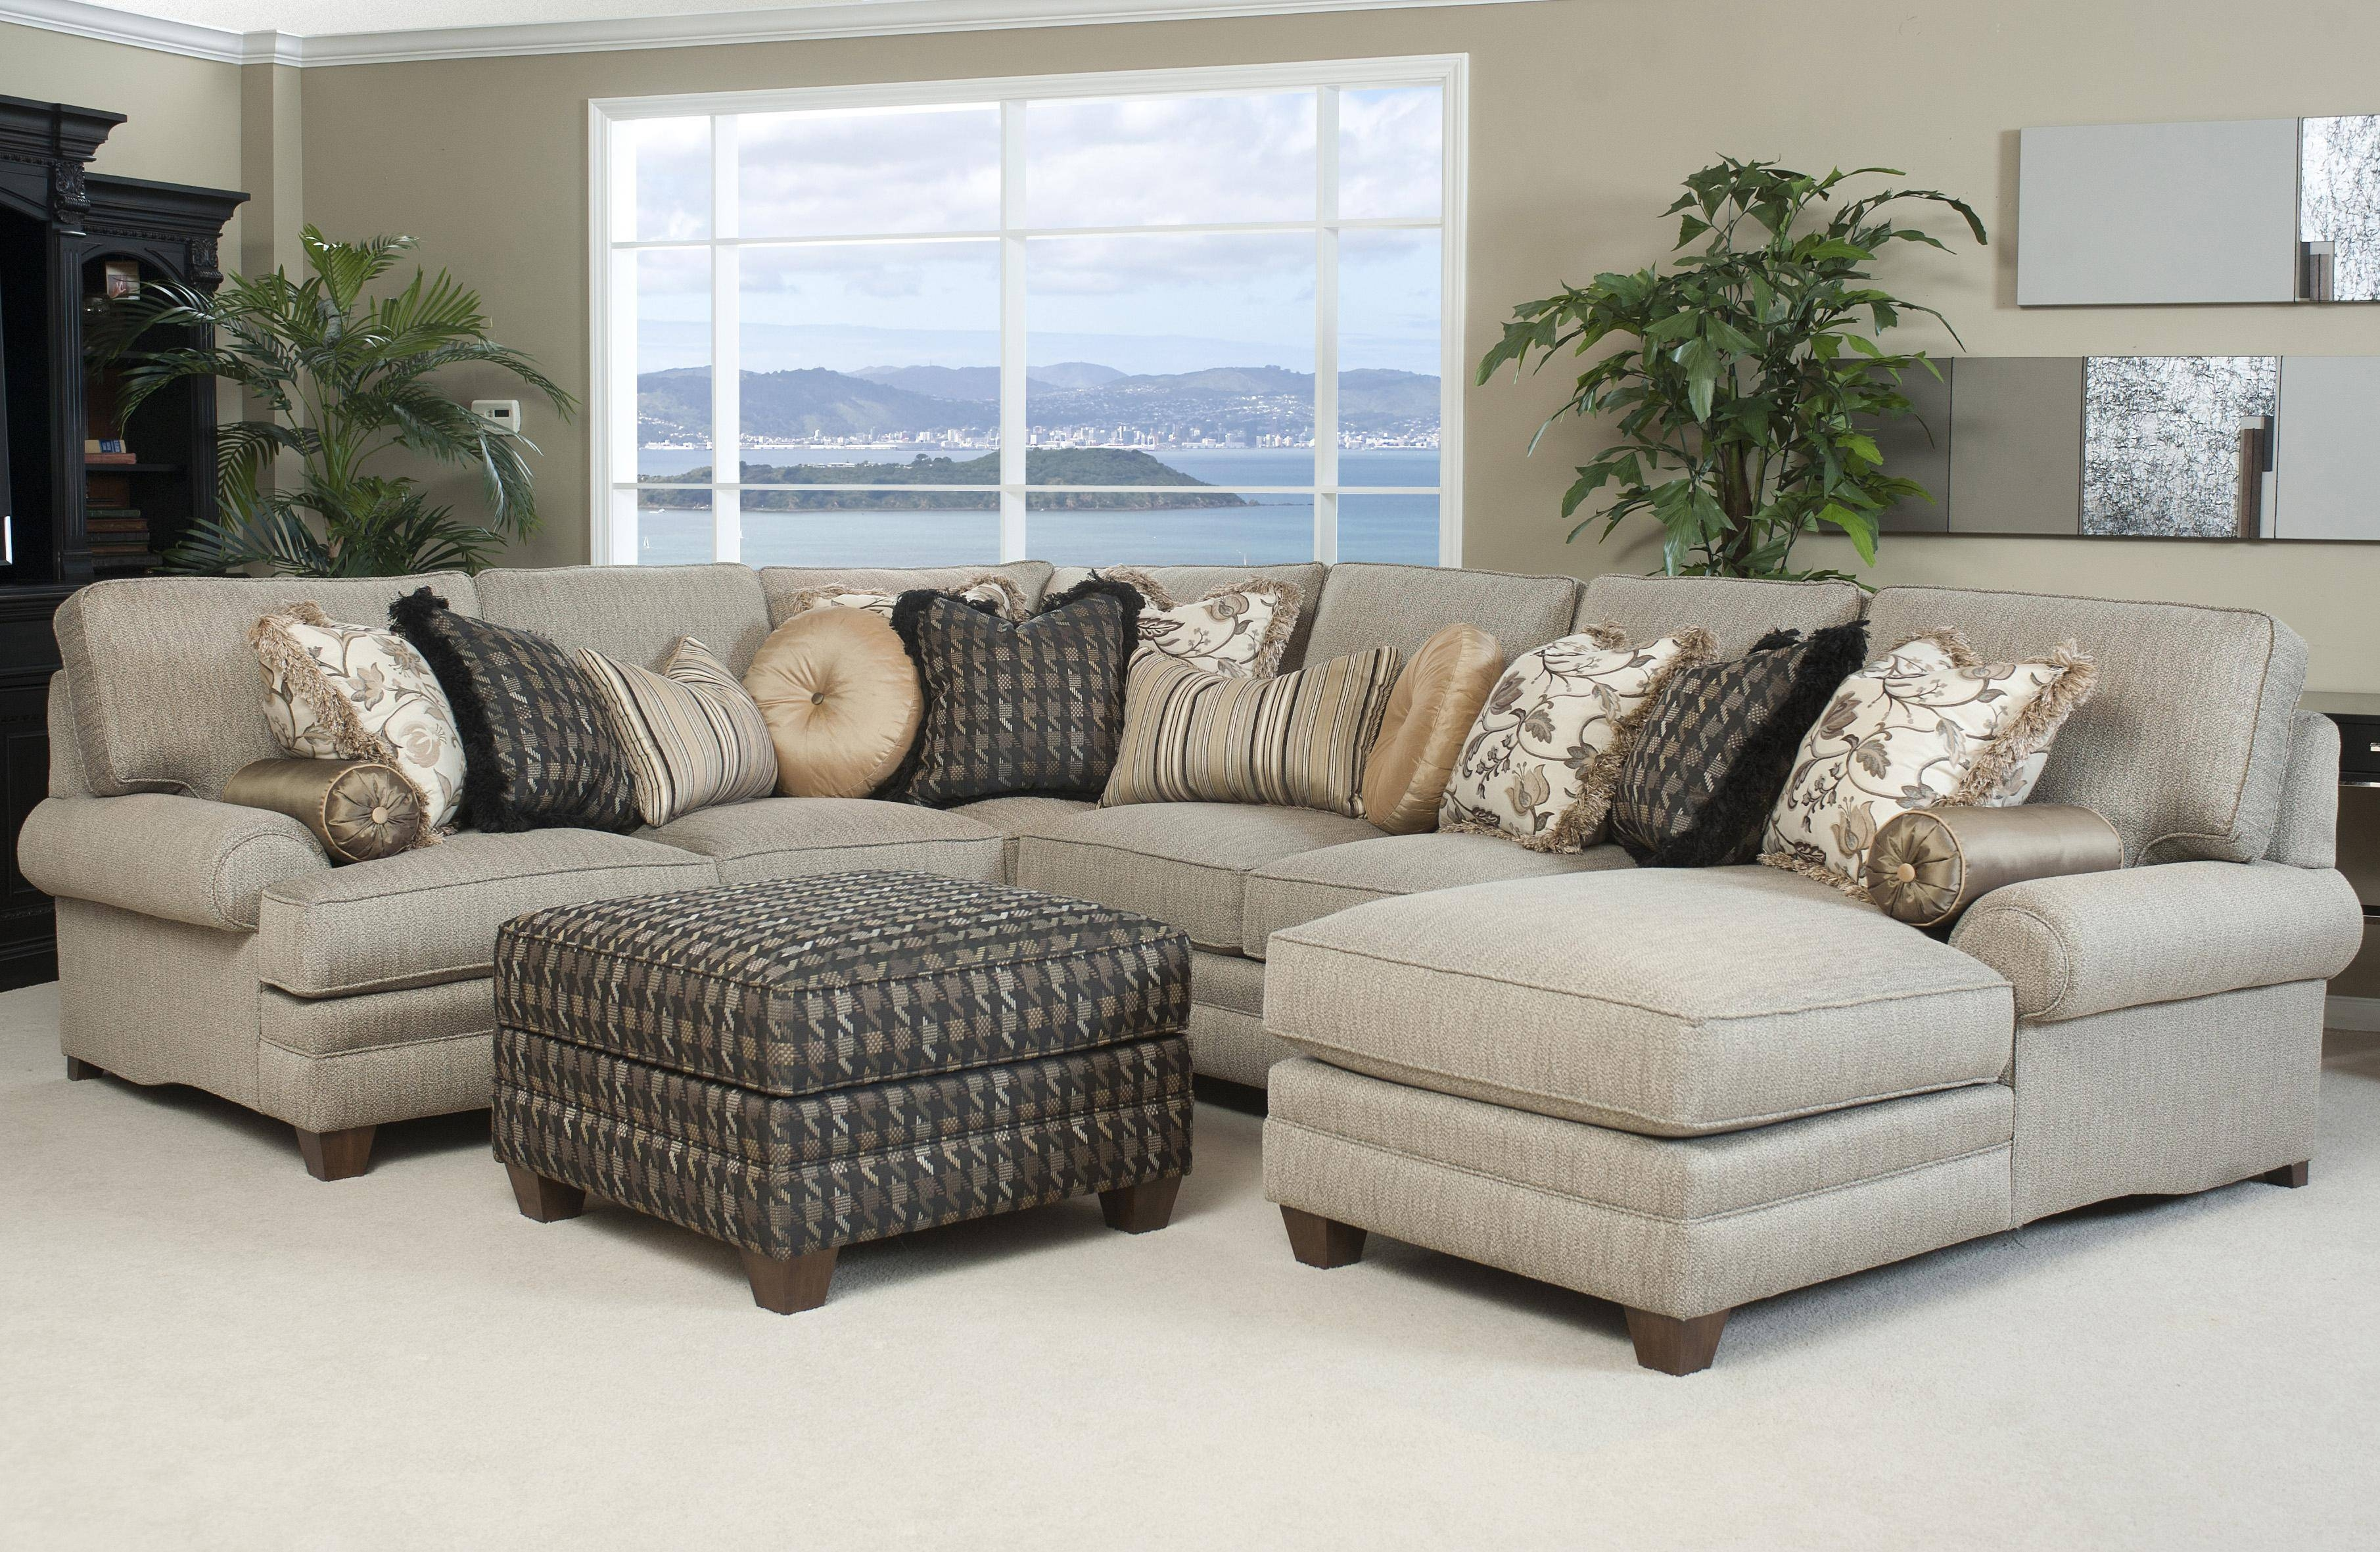 Traditional Styled Sectional Sofa With Comfortable Pillowed Seat within Large Comfortable Sectional Sofas (Image 25 of 25)